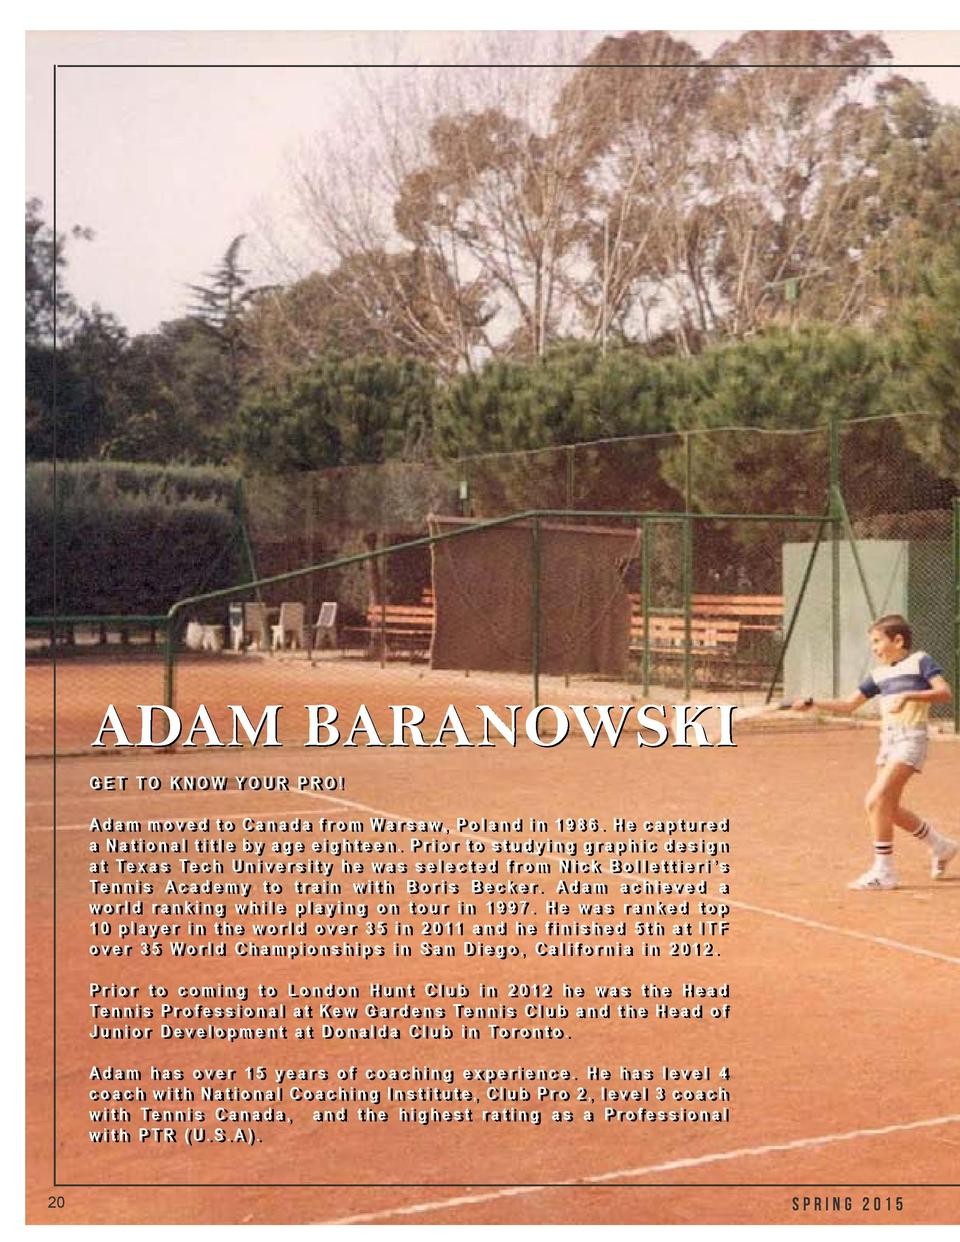 NEW YEAR, NEW DIRECTOR  TENNIS Adam Baranowski, Director of Tennis abaranowski londonhuntclub.com  I hope all of you have ...